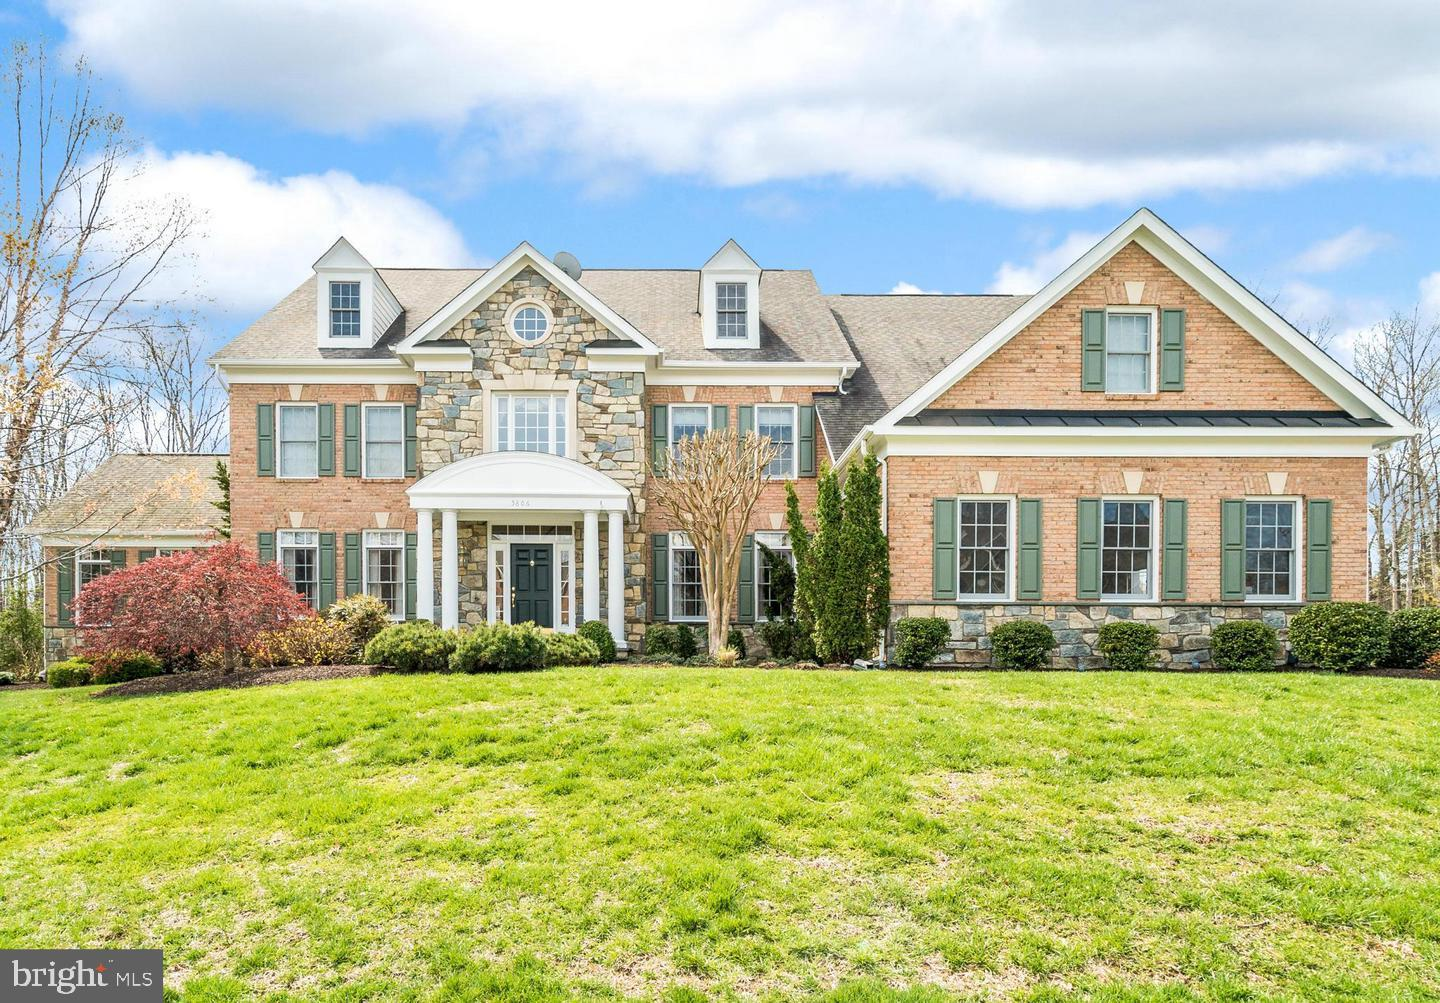 5806 RIDINGS MANOR PLACE, CENTREVILLE, VA 20120